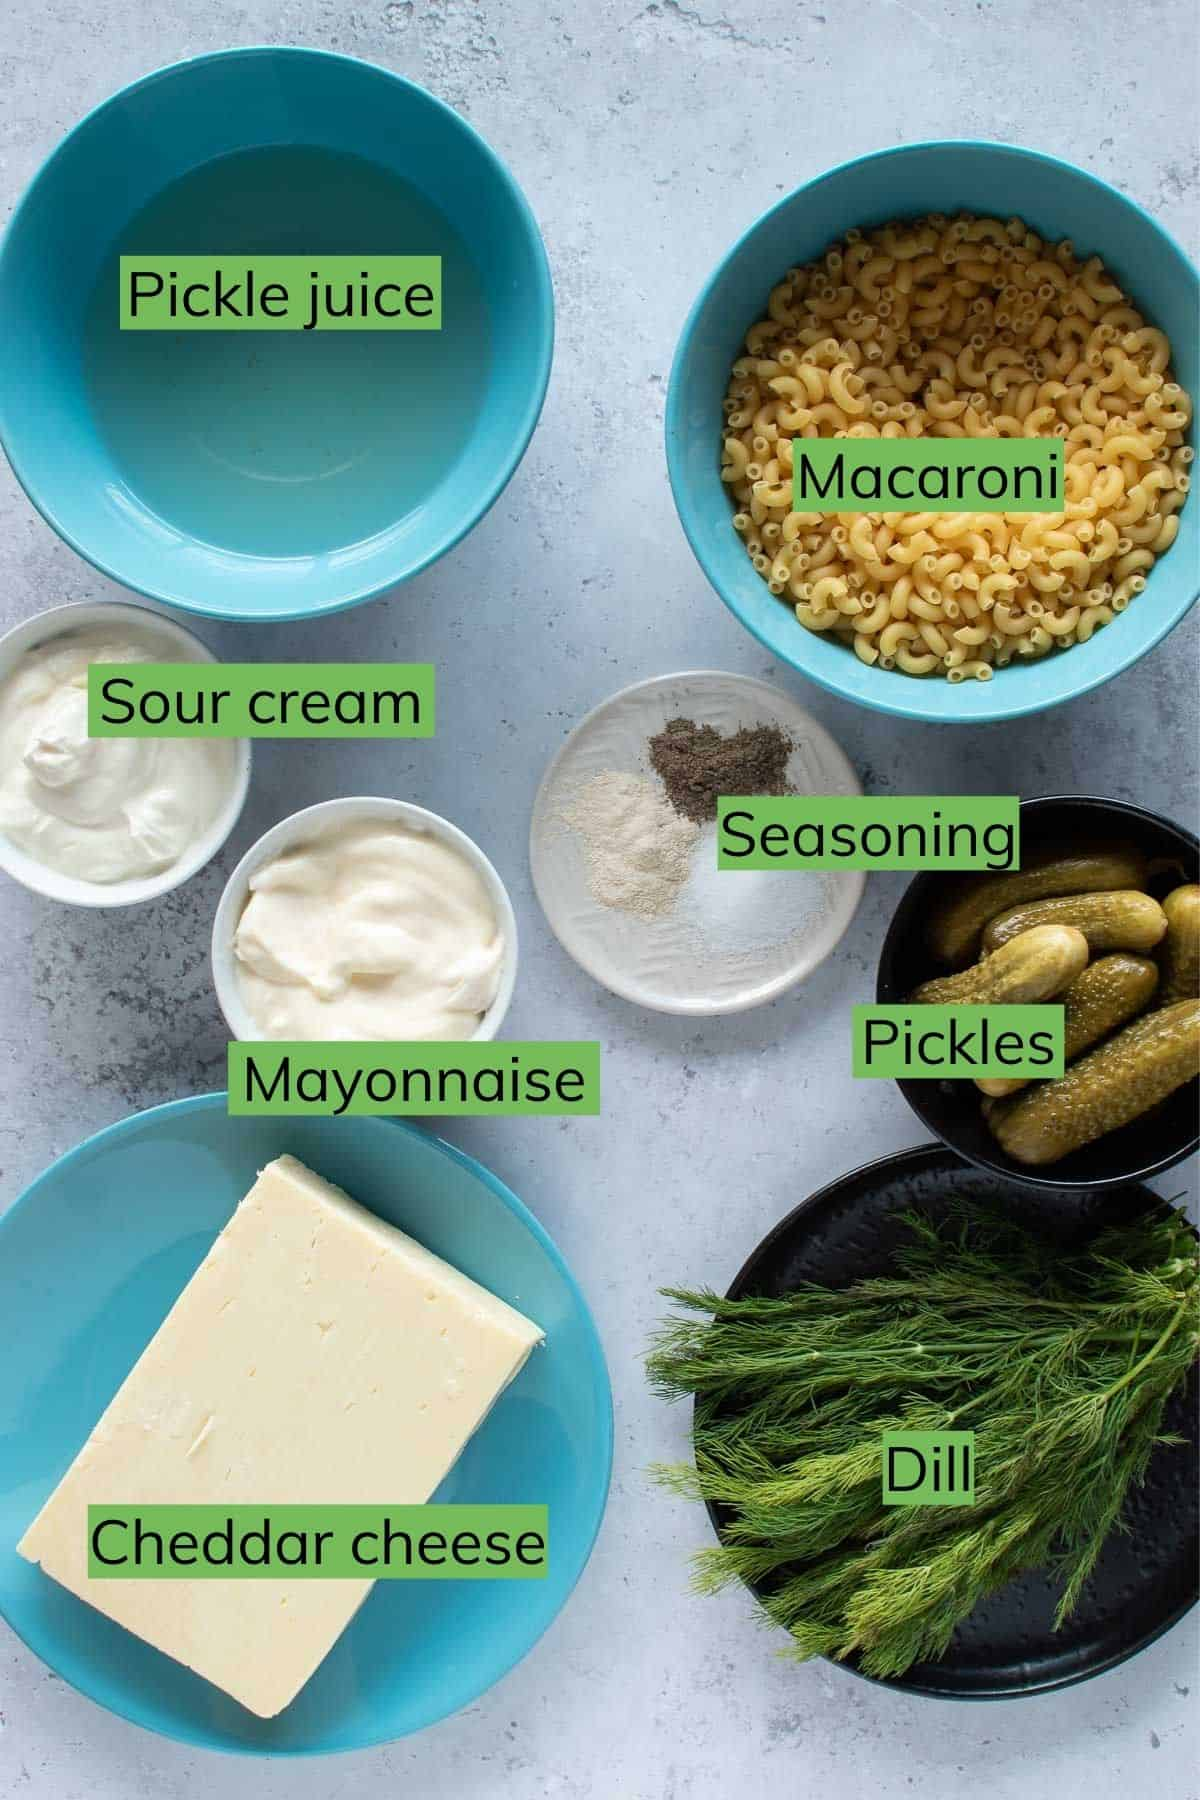 The ingredients needed to make this dish.